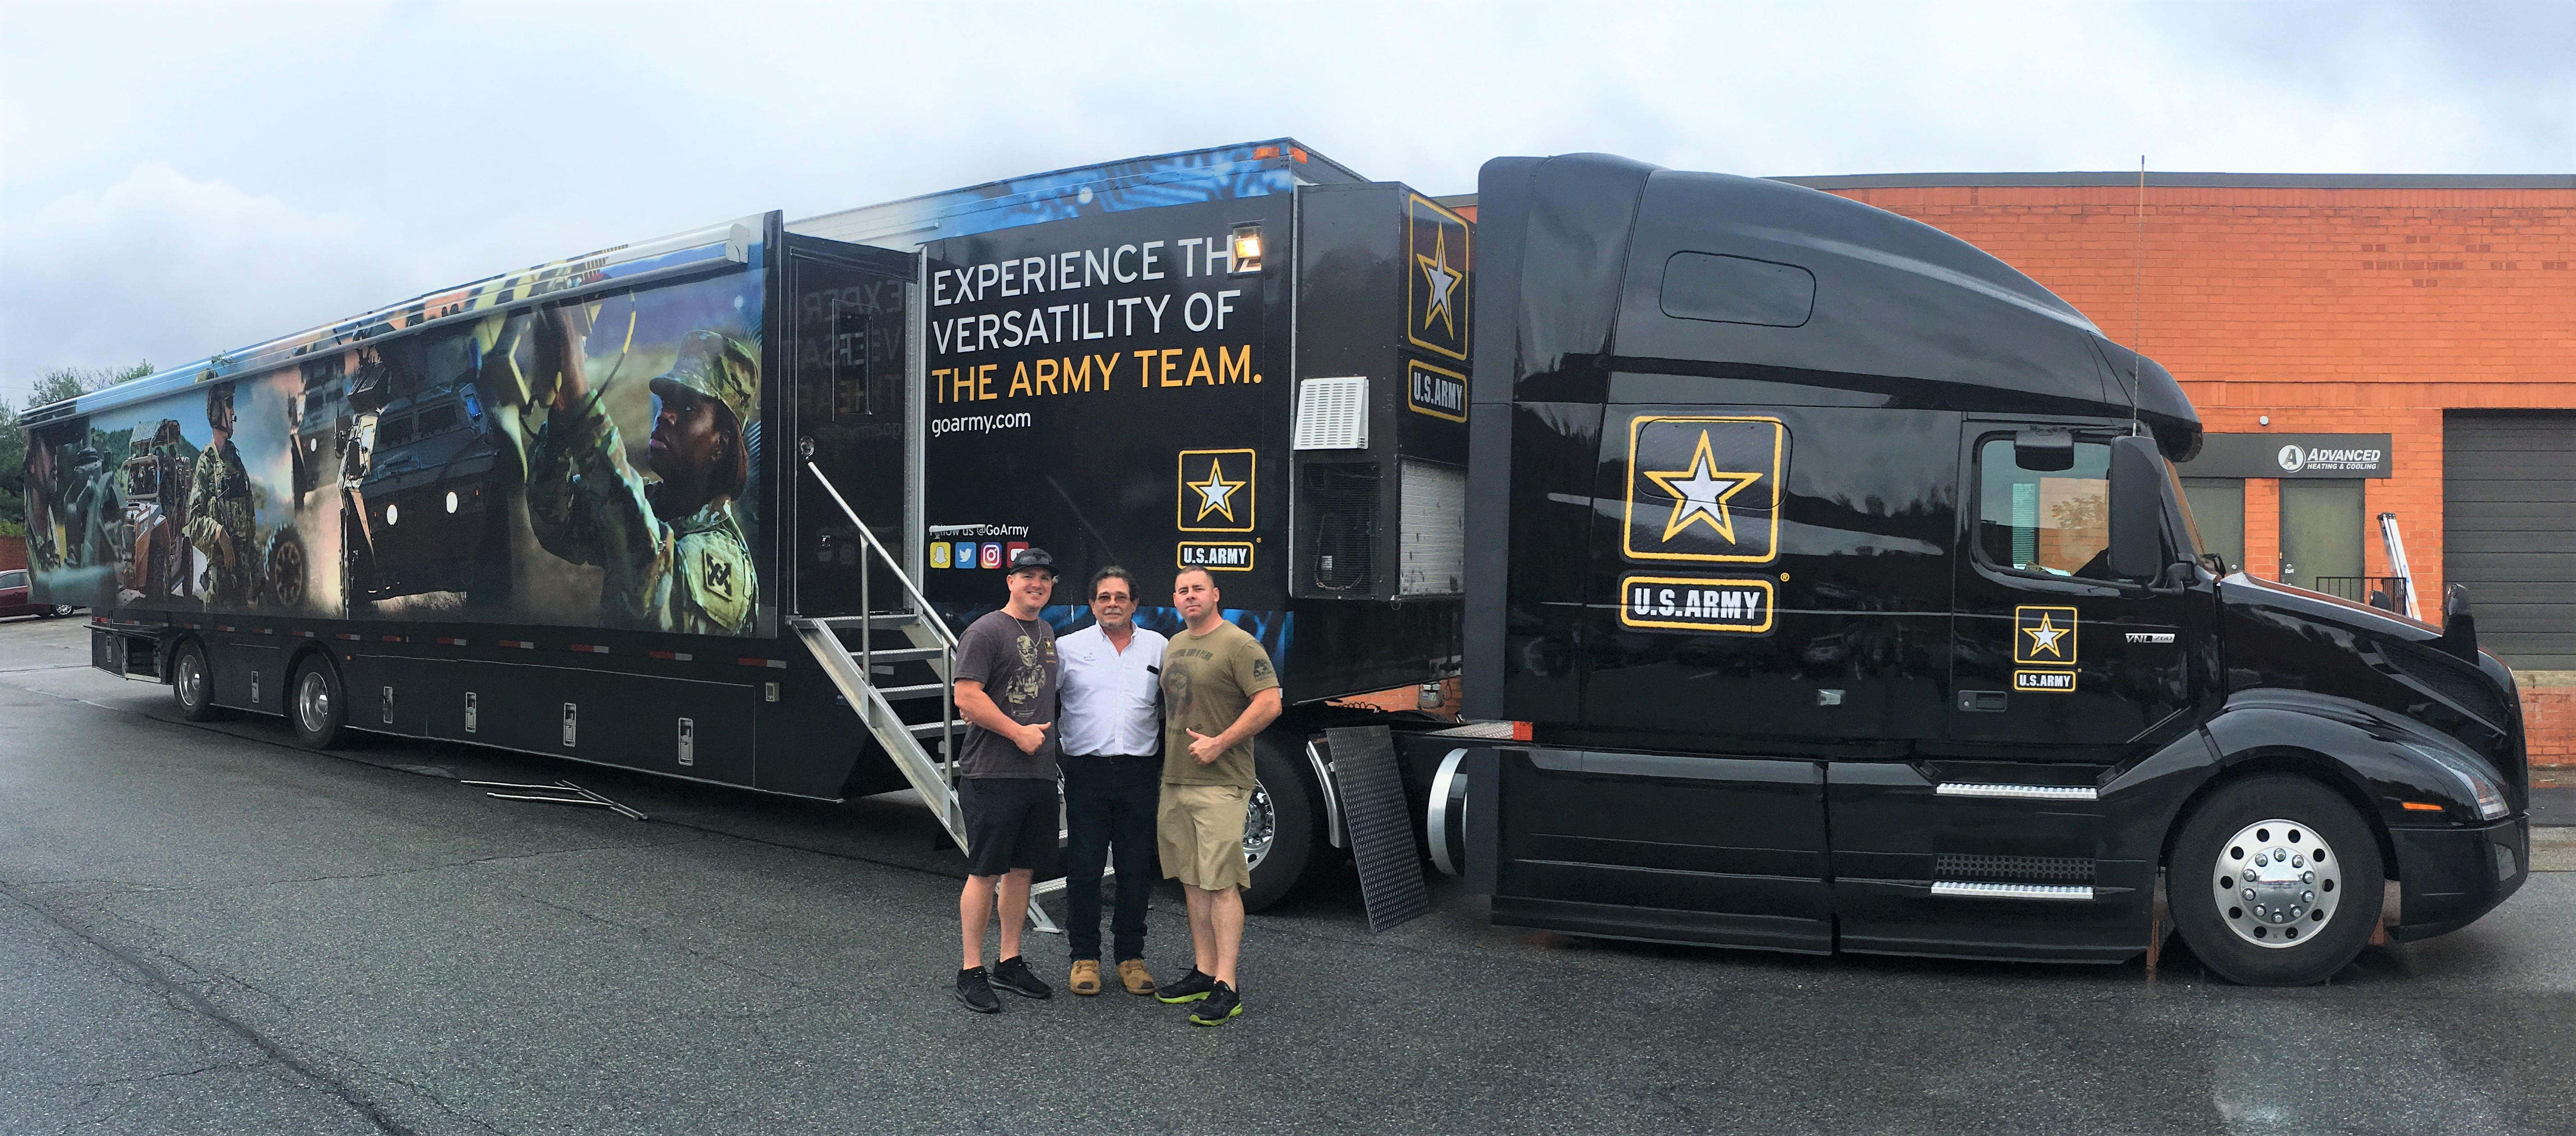 3 men standing and smiling in front of a truck that is advertising for the U.S. Army